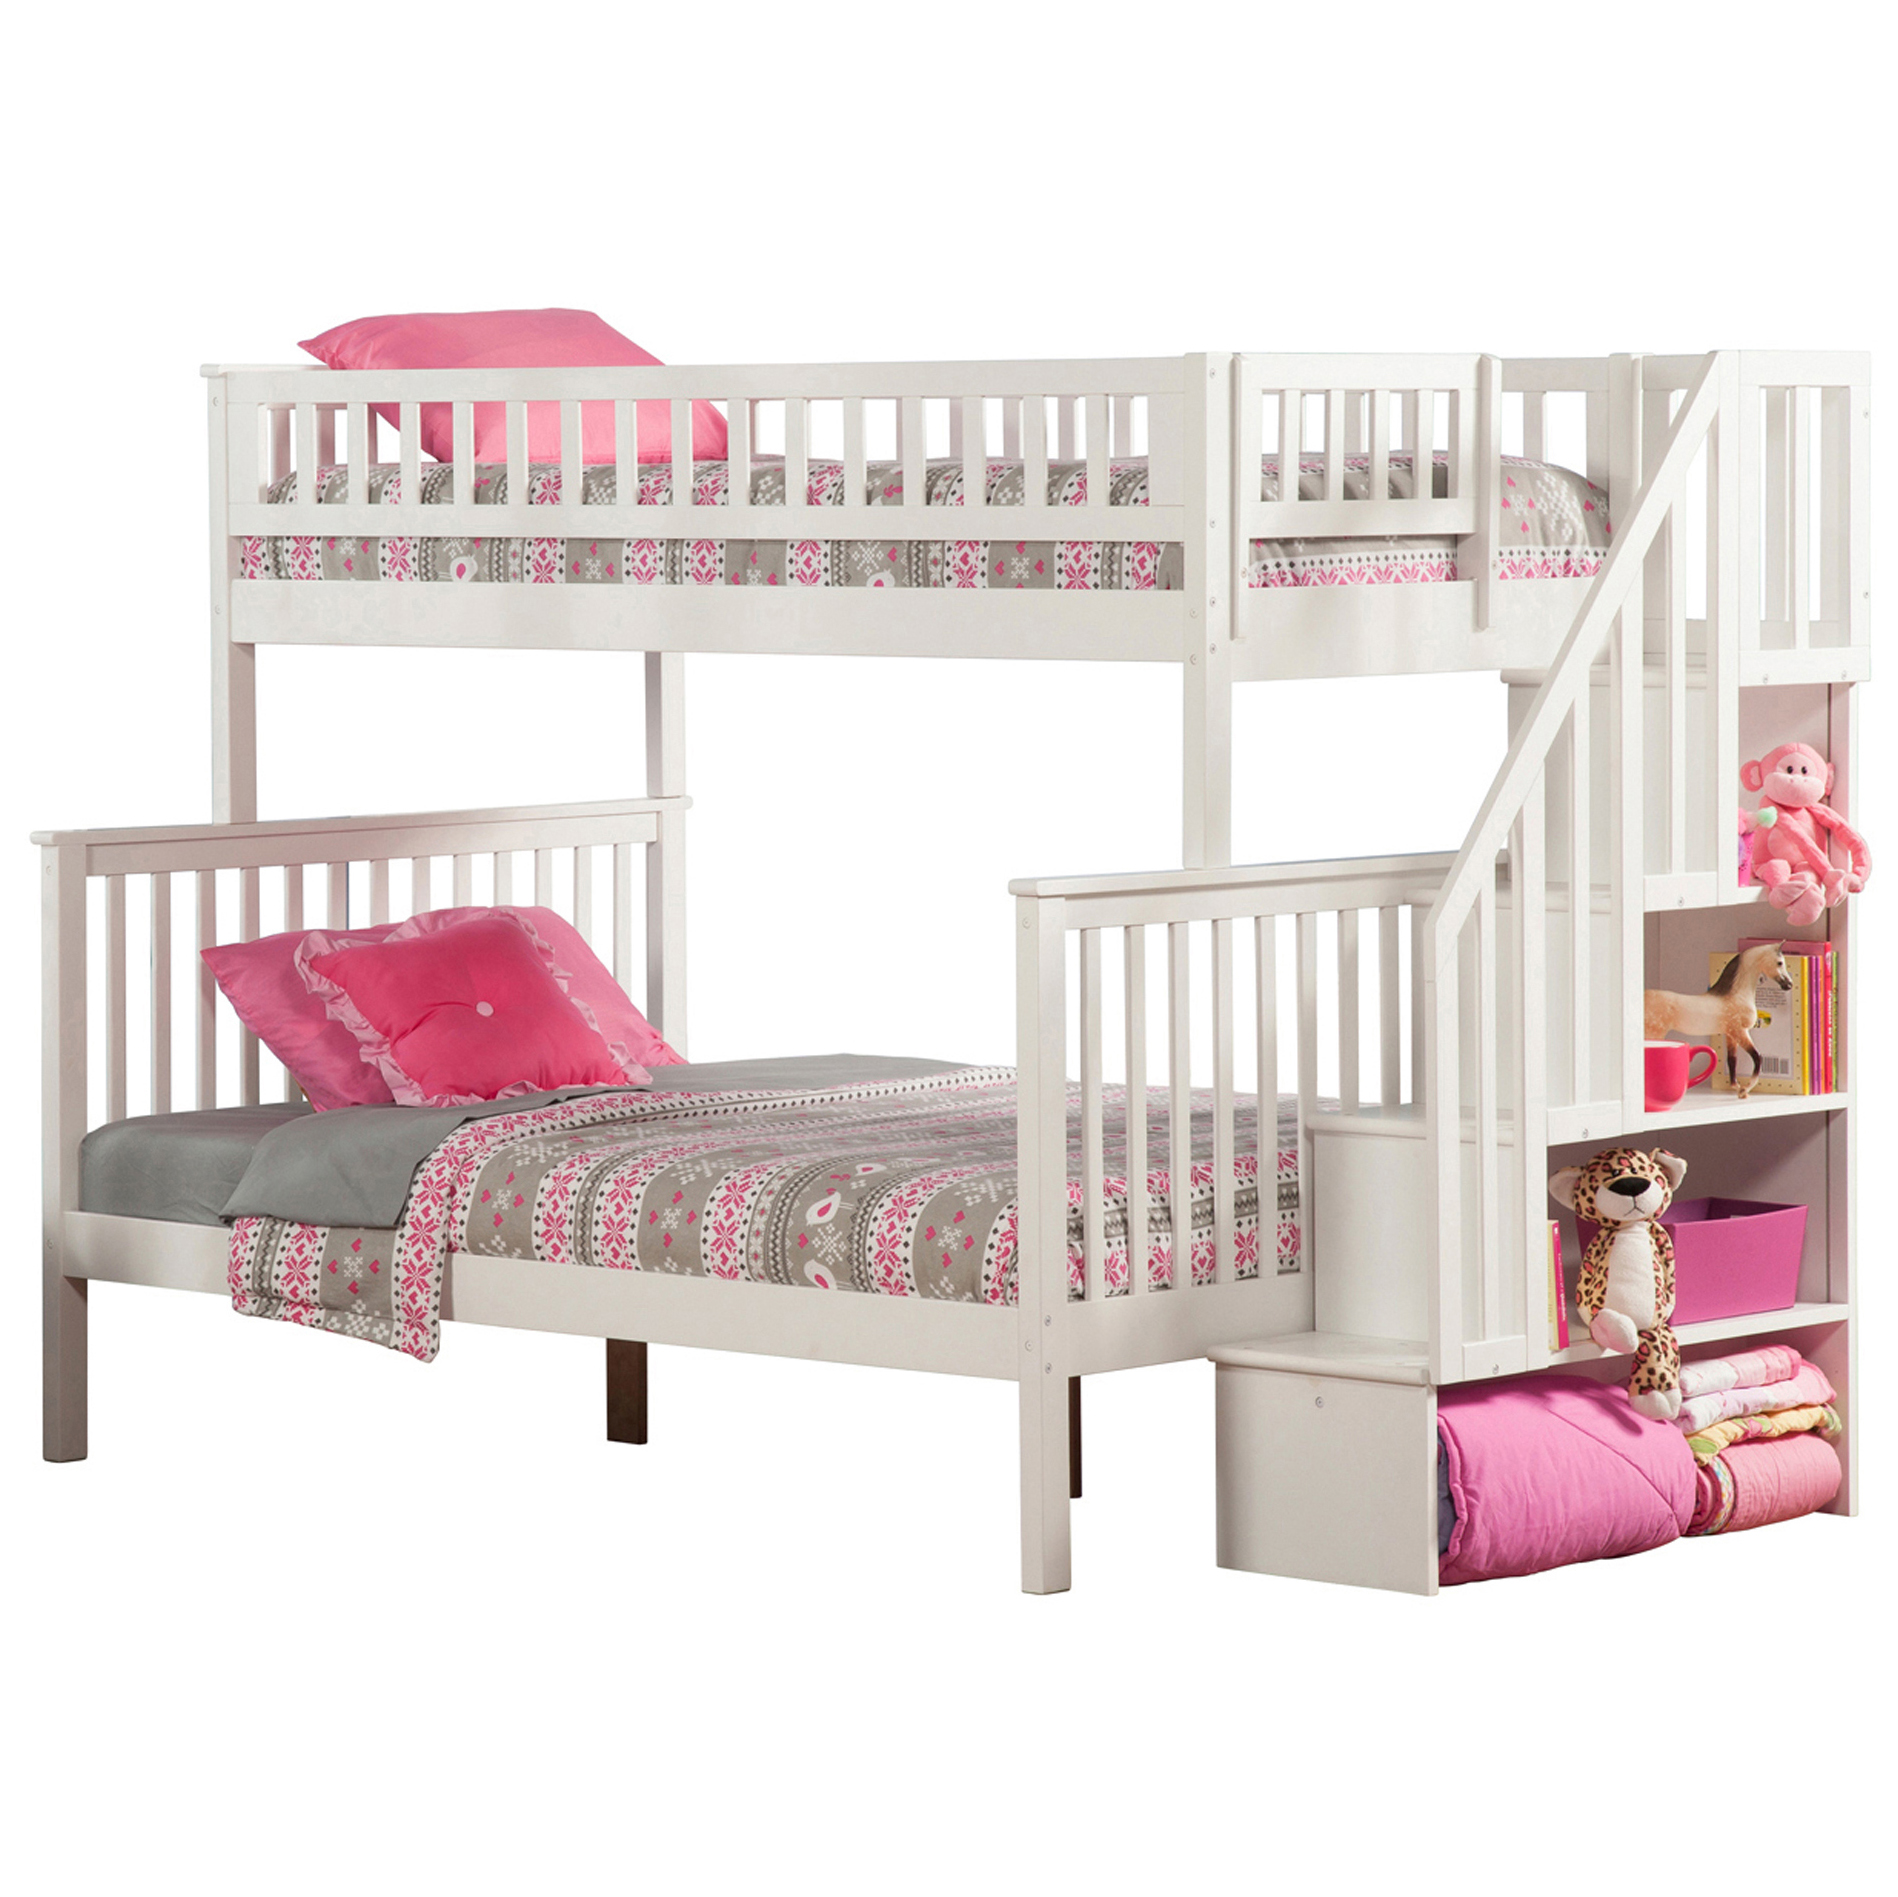 White Twin Bed With Storage Woodland Twin/full Staircase Bunk Bed - White Ab56702